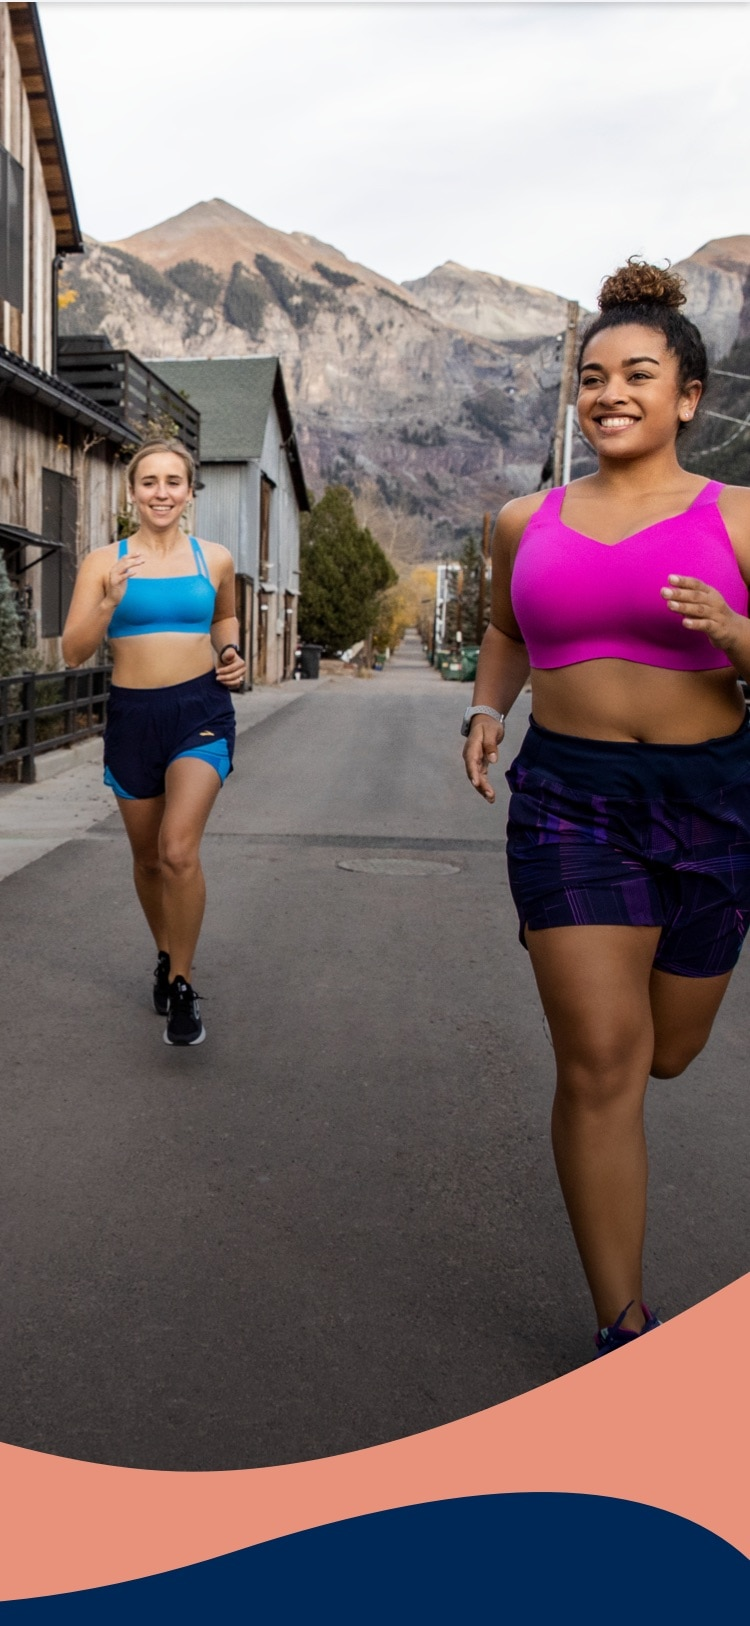 Two women running outdoors wearing the Drive Convertible and Drive Interlace Run Bras